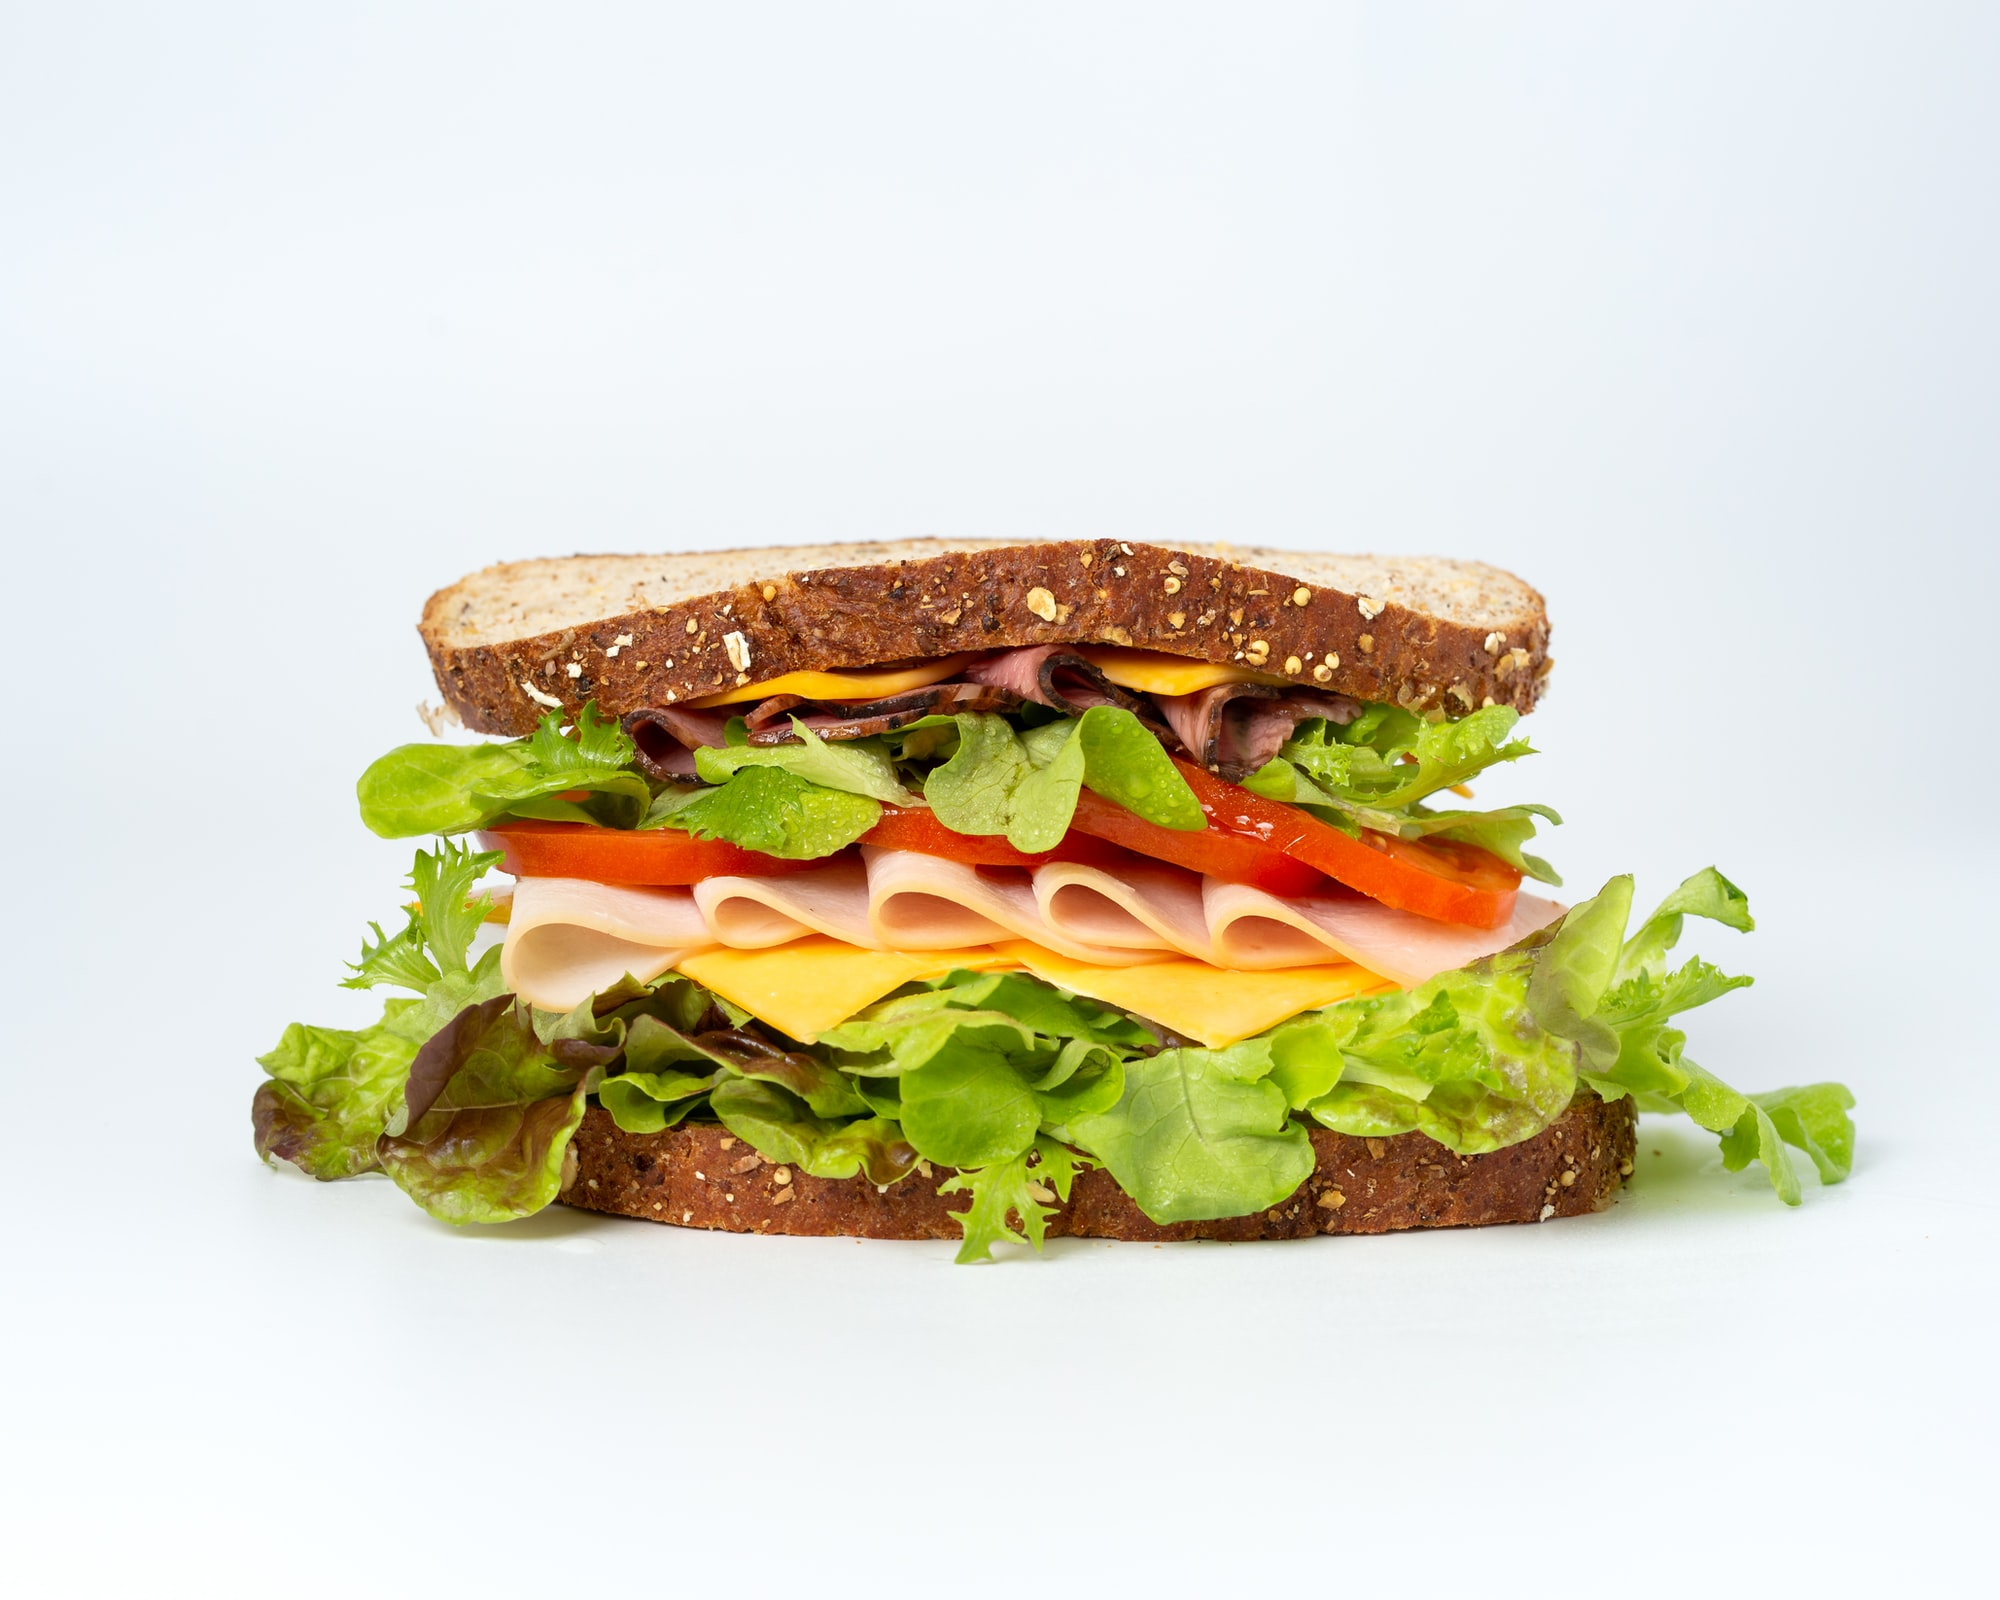 A closeup of a sandwich, showing bread, meat, cheese, and veggies.